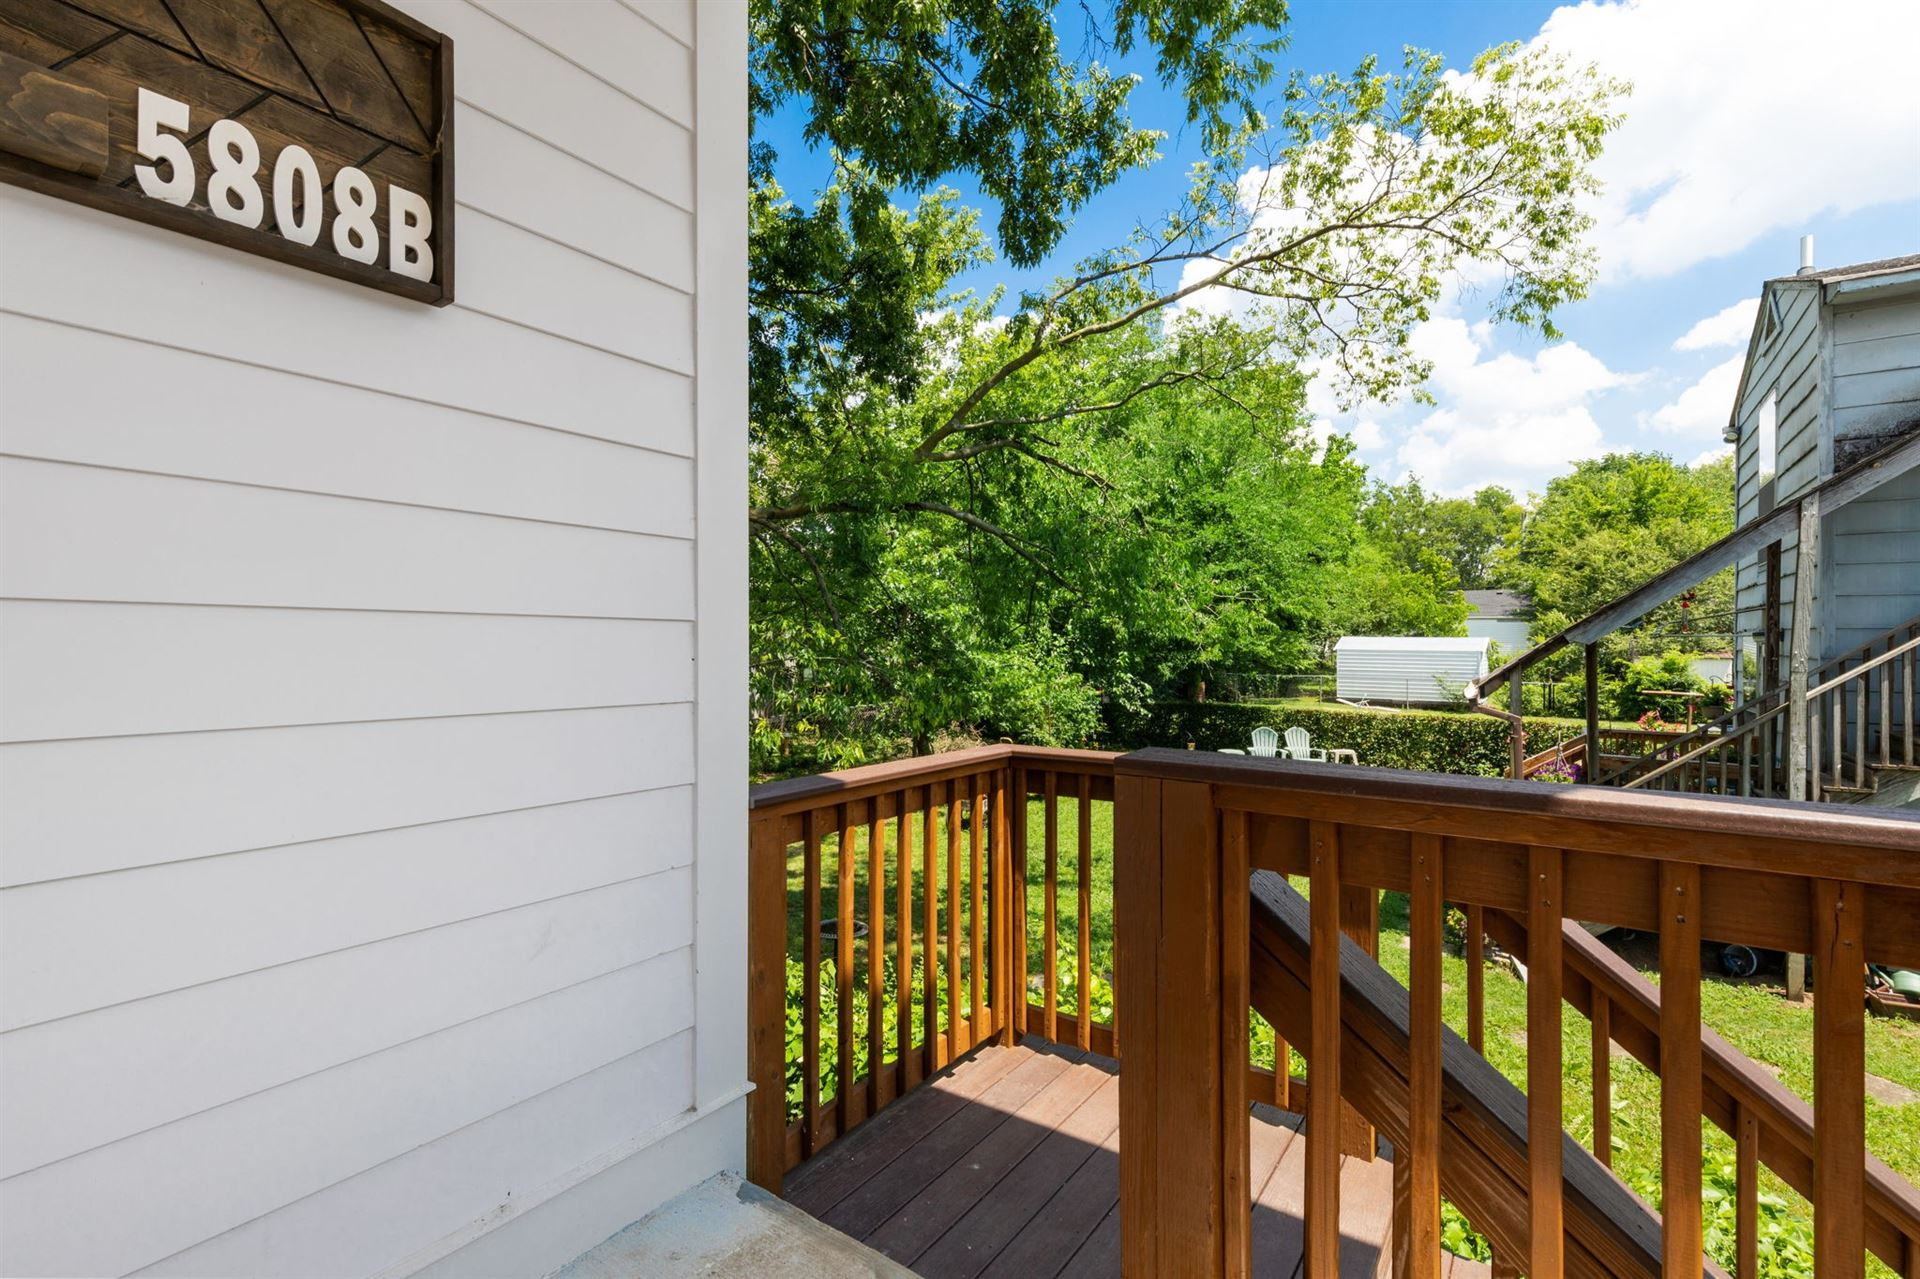 Photo of 5808B Couch Dr, Nashville, TN 37209 (MLS # 2168935)